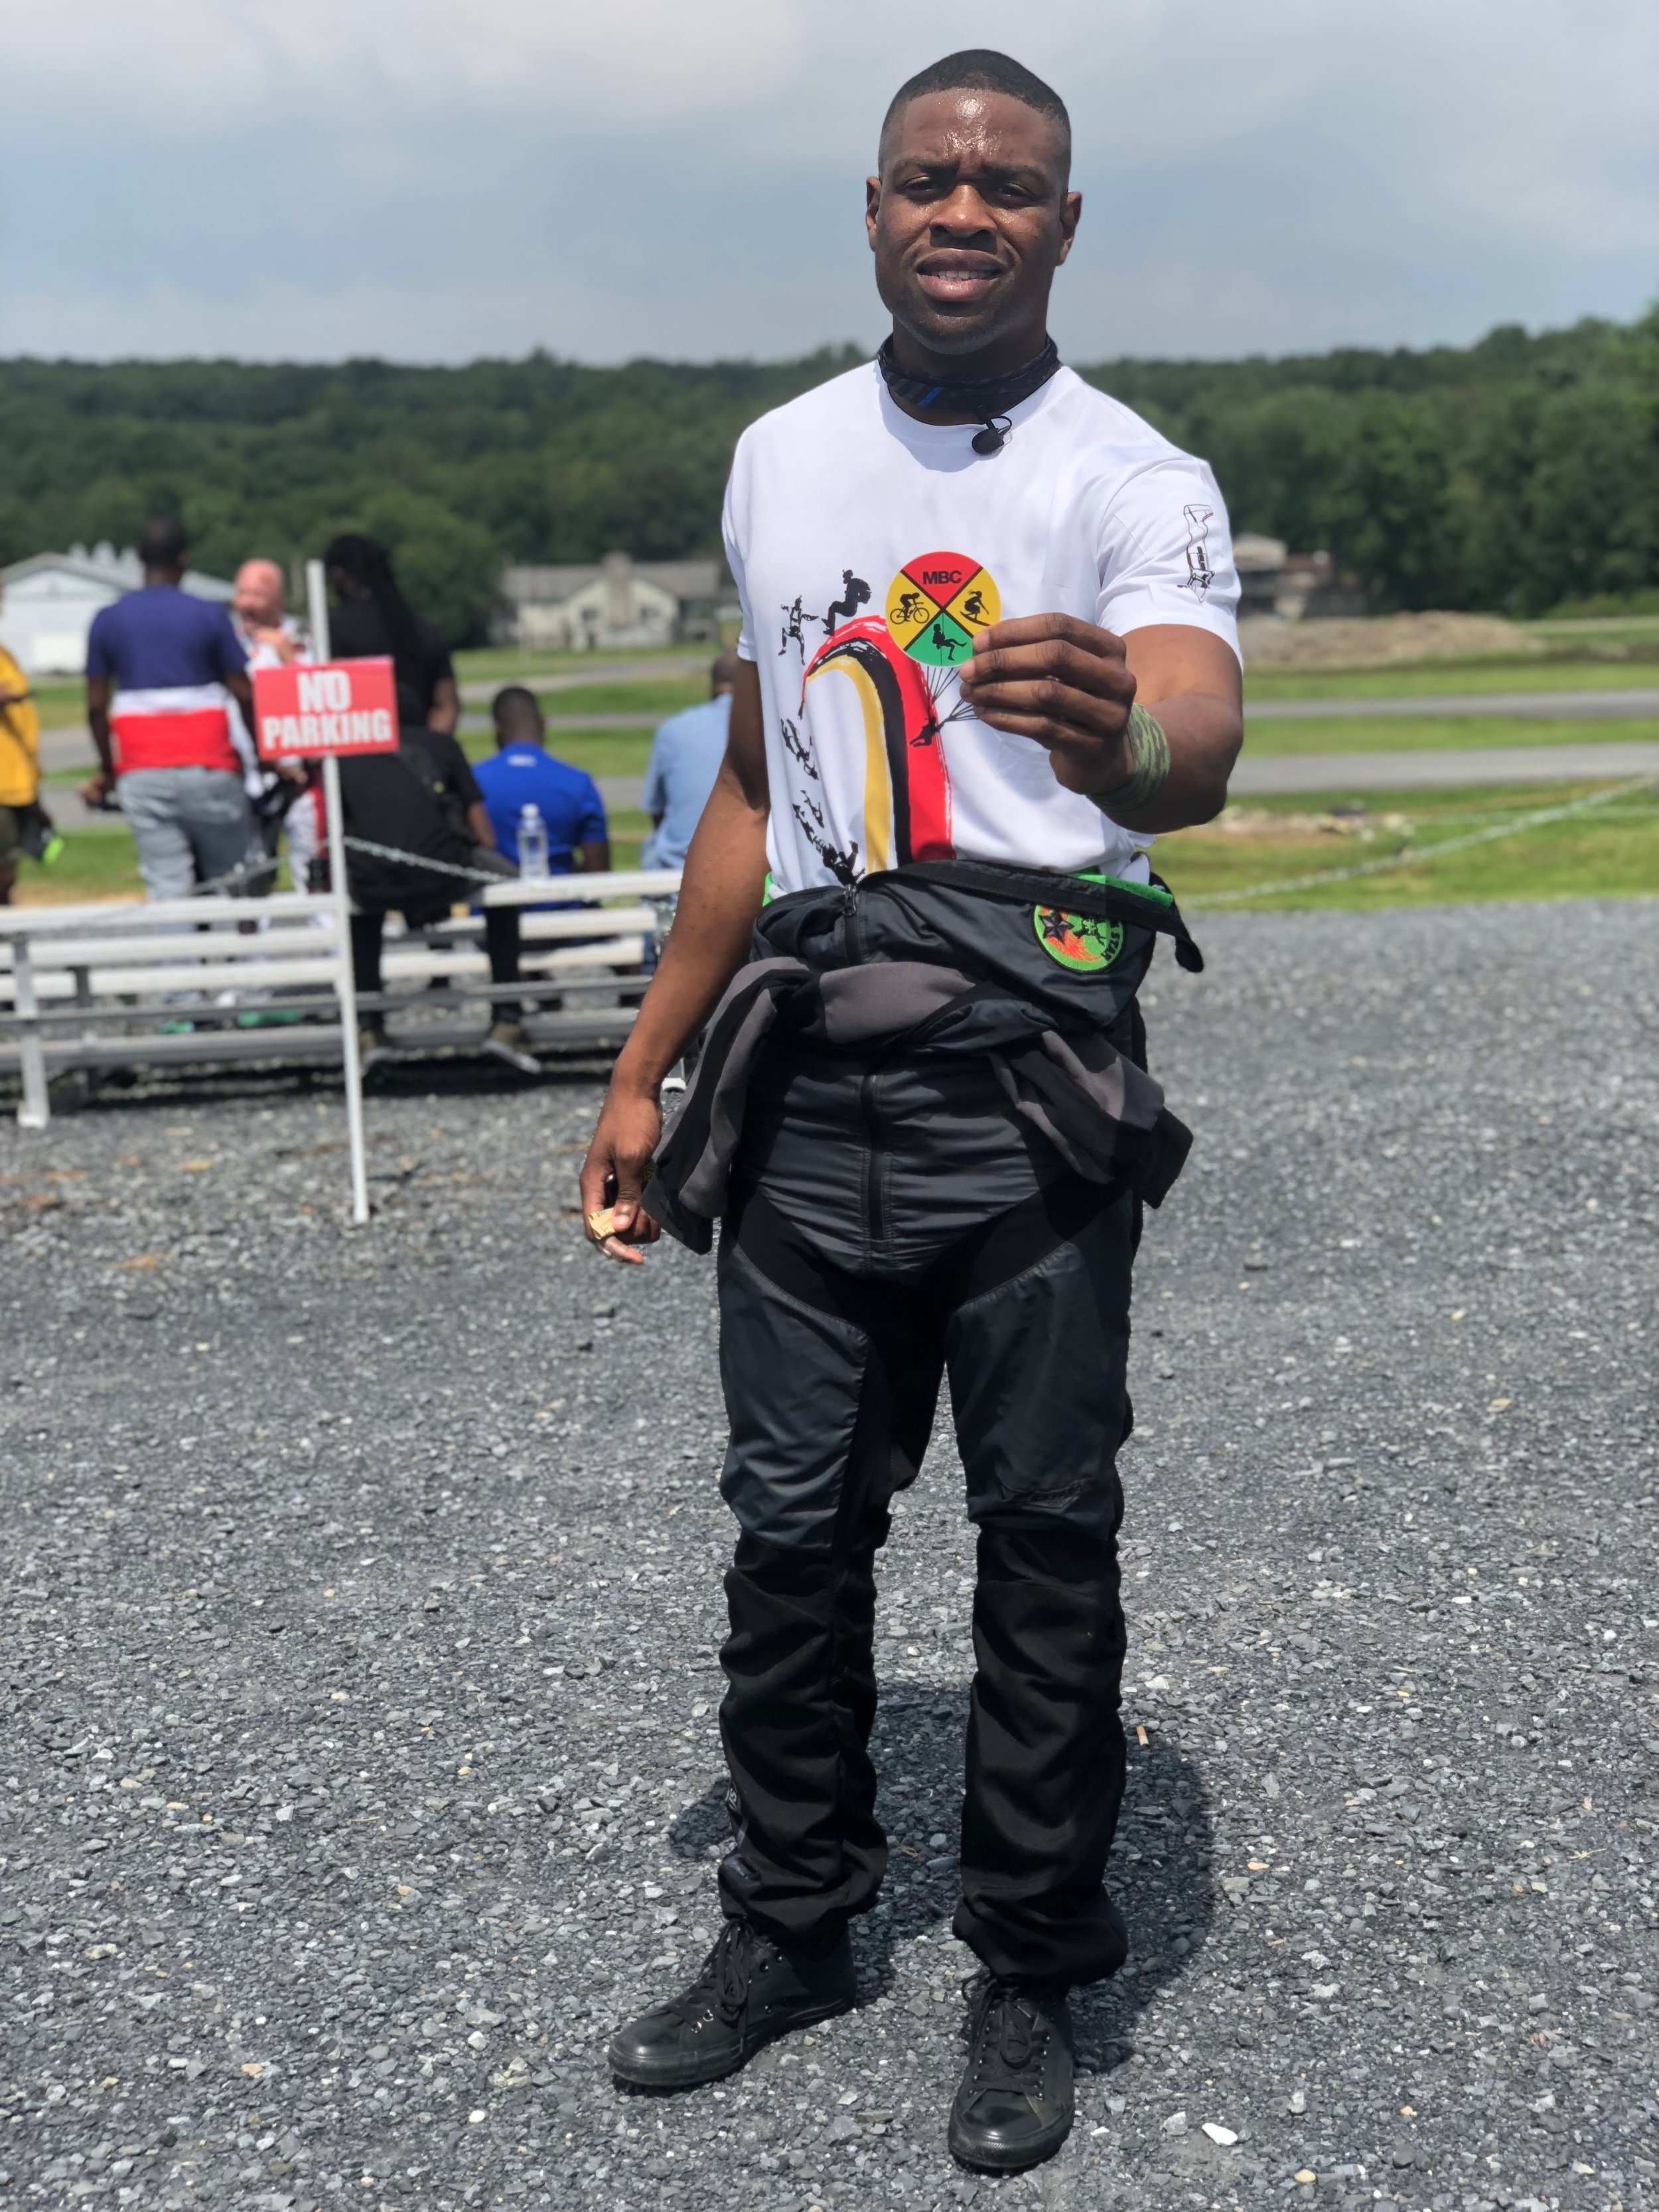 Manny sports a Team Blackstar patch on his jumpsuit while also holding up a Melanin Base Camp sticker. Both organizations promote diversity in adventure sports.  Photo courtesy of Cyndall King